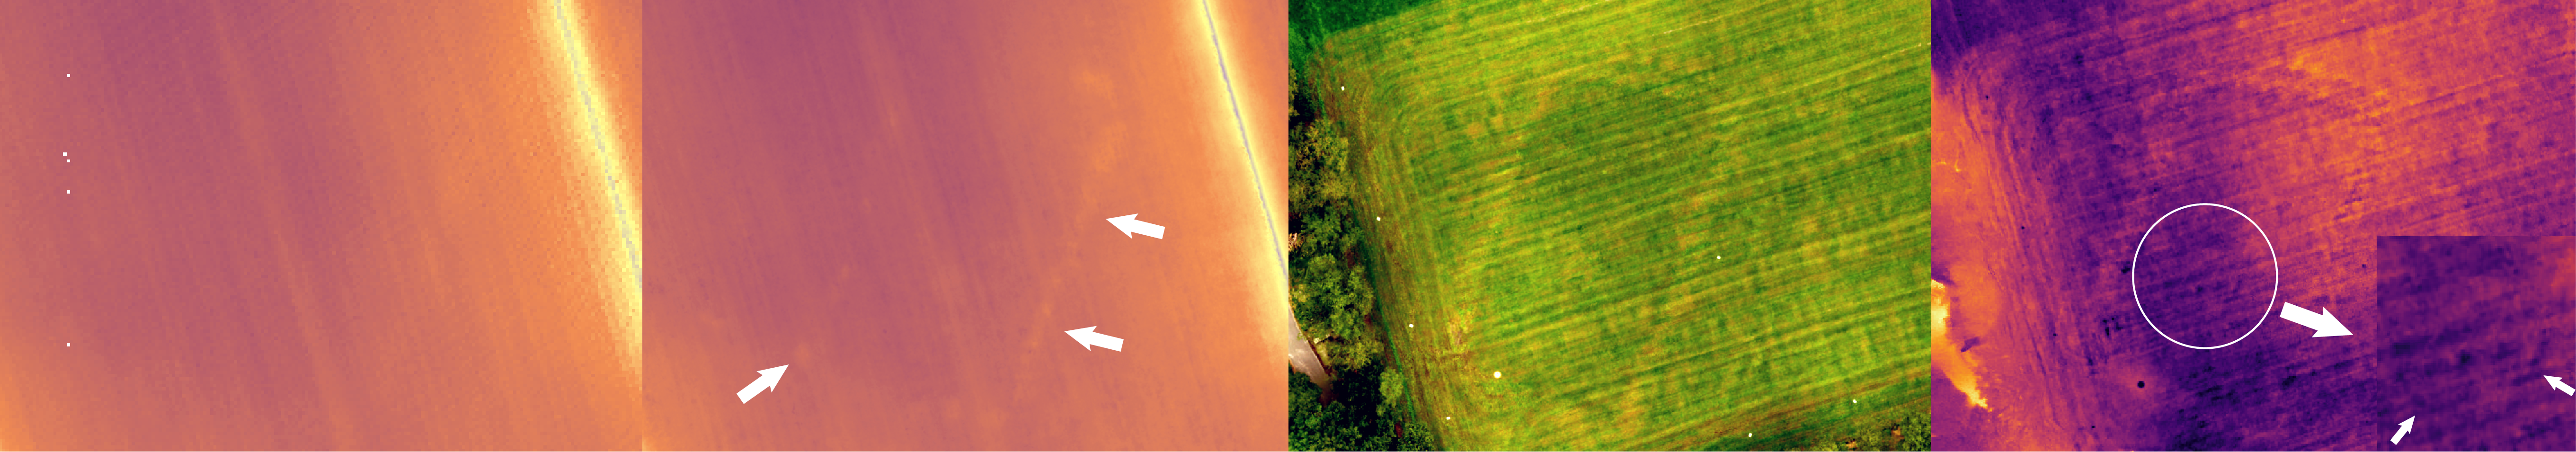 Siegerswoude (NL), left LiDAR data vs IBM data,  right (other location) drone orthophoto vs thermal imagery (inset anomaly)